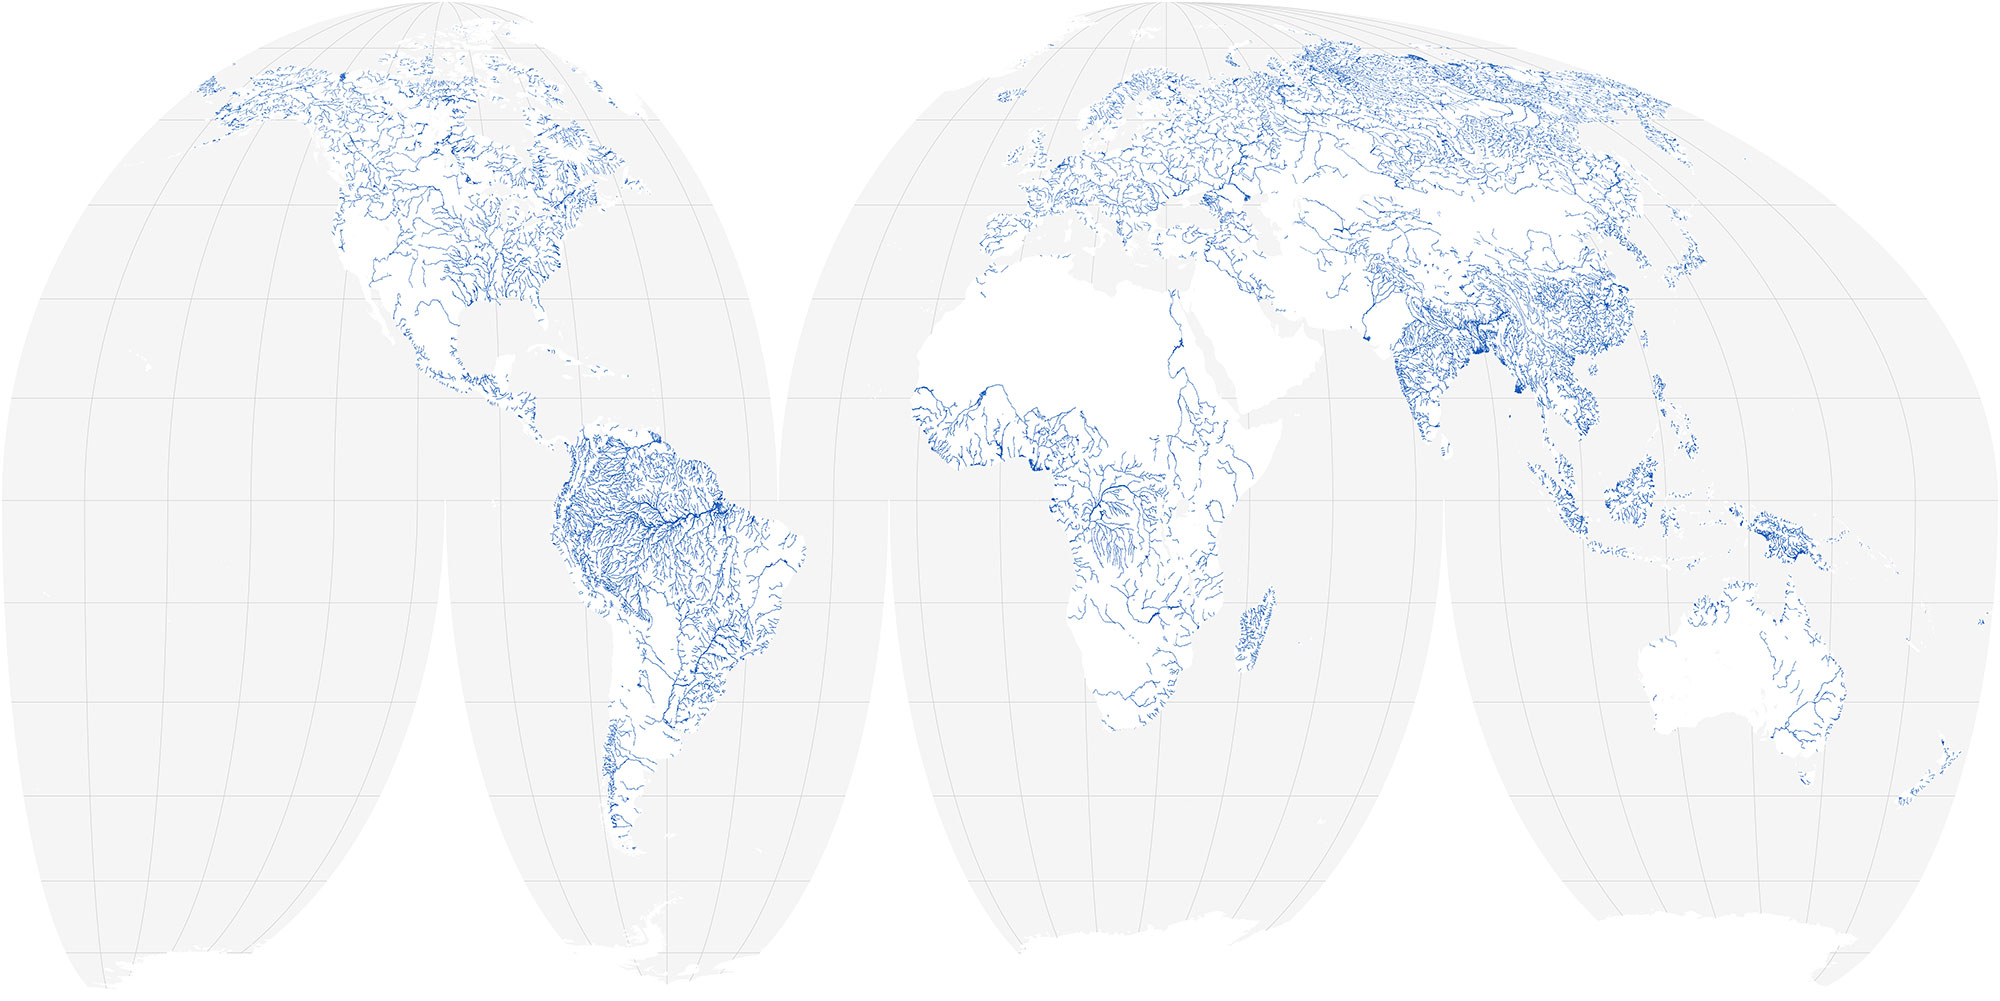 This Figure demonstrated a new database of rivers and their widths will be used to interpret data from SWOT, which will measure changes in river and lake heights globally. Note that there are certain regions of the globe where SWOT will not be measuring such as the Sahara dessert.